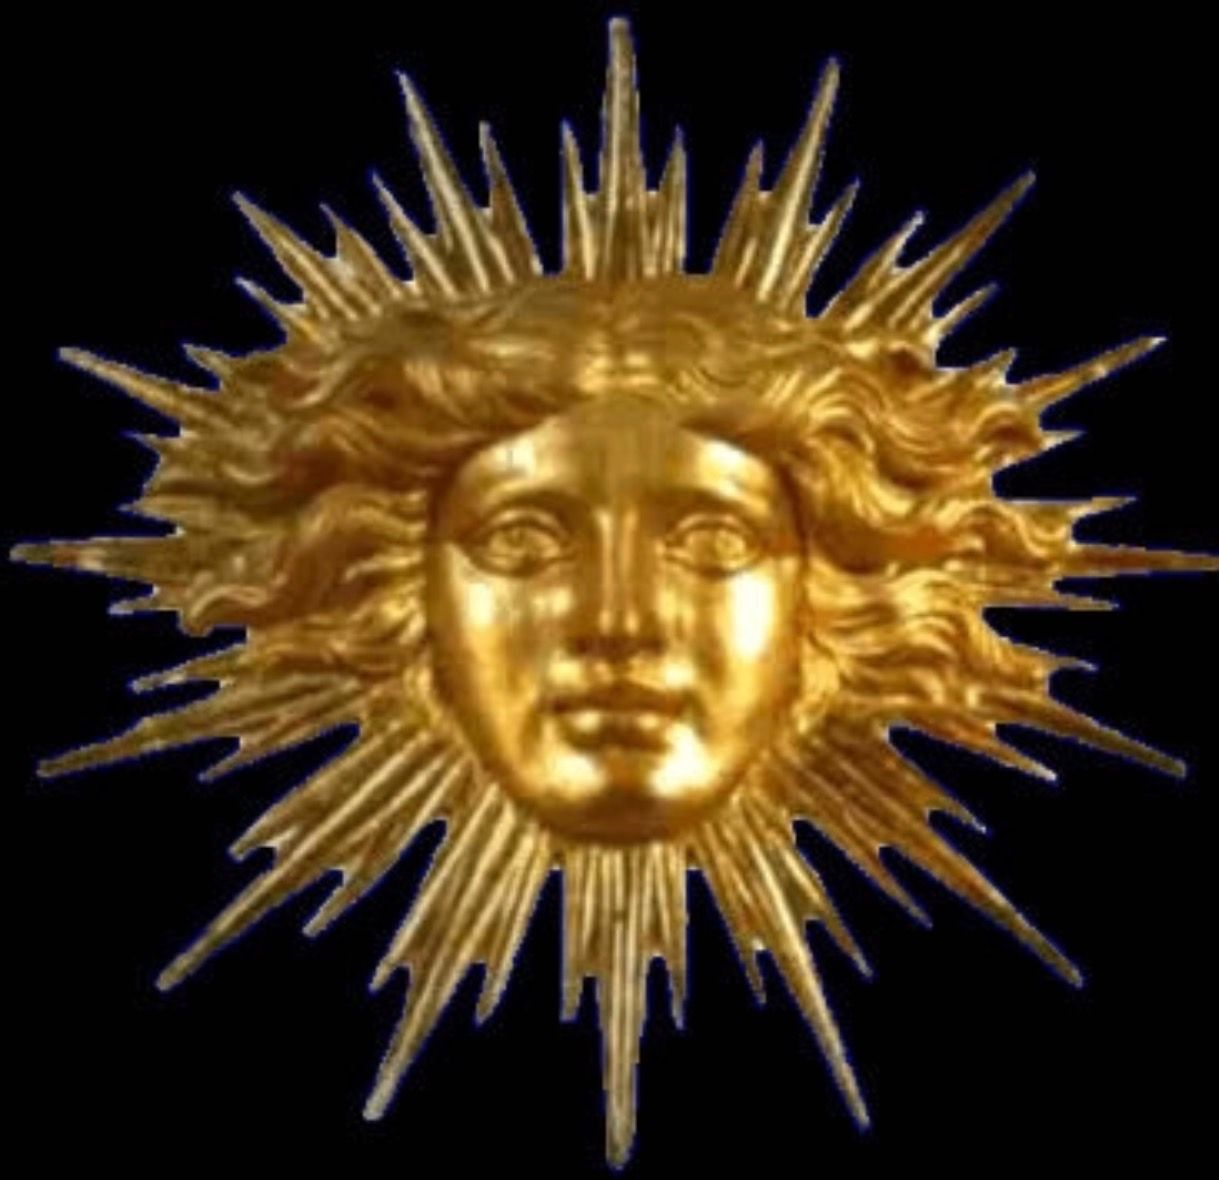 Pin By Rebekah Myers On Sol Luna Pinterest Sun King And Apollo